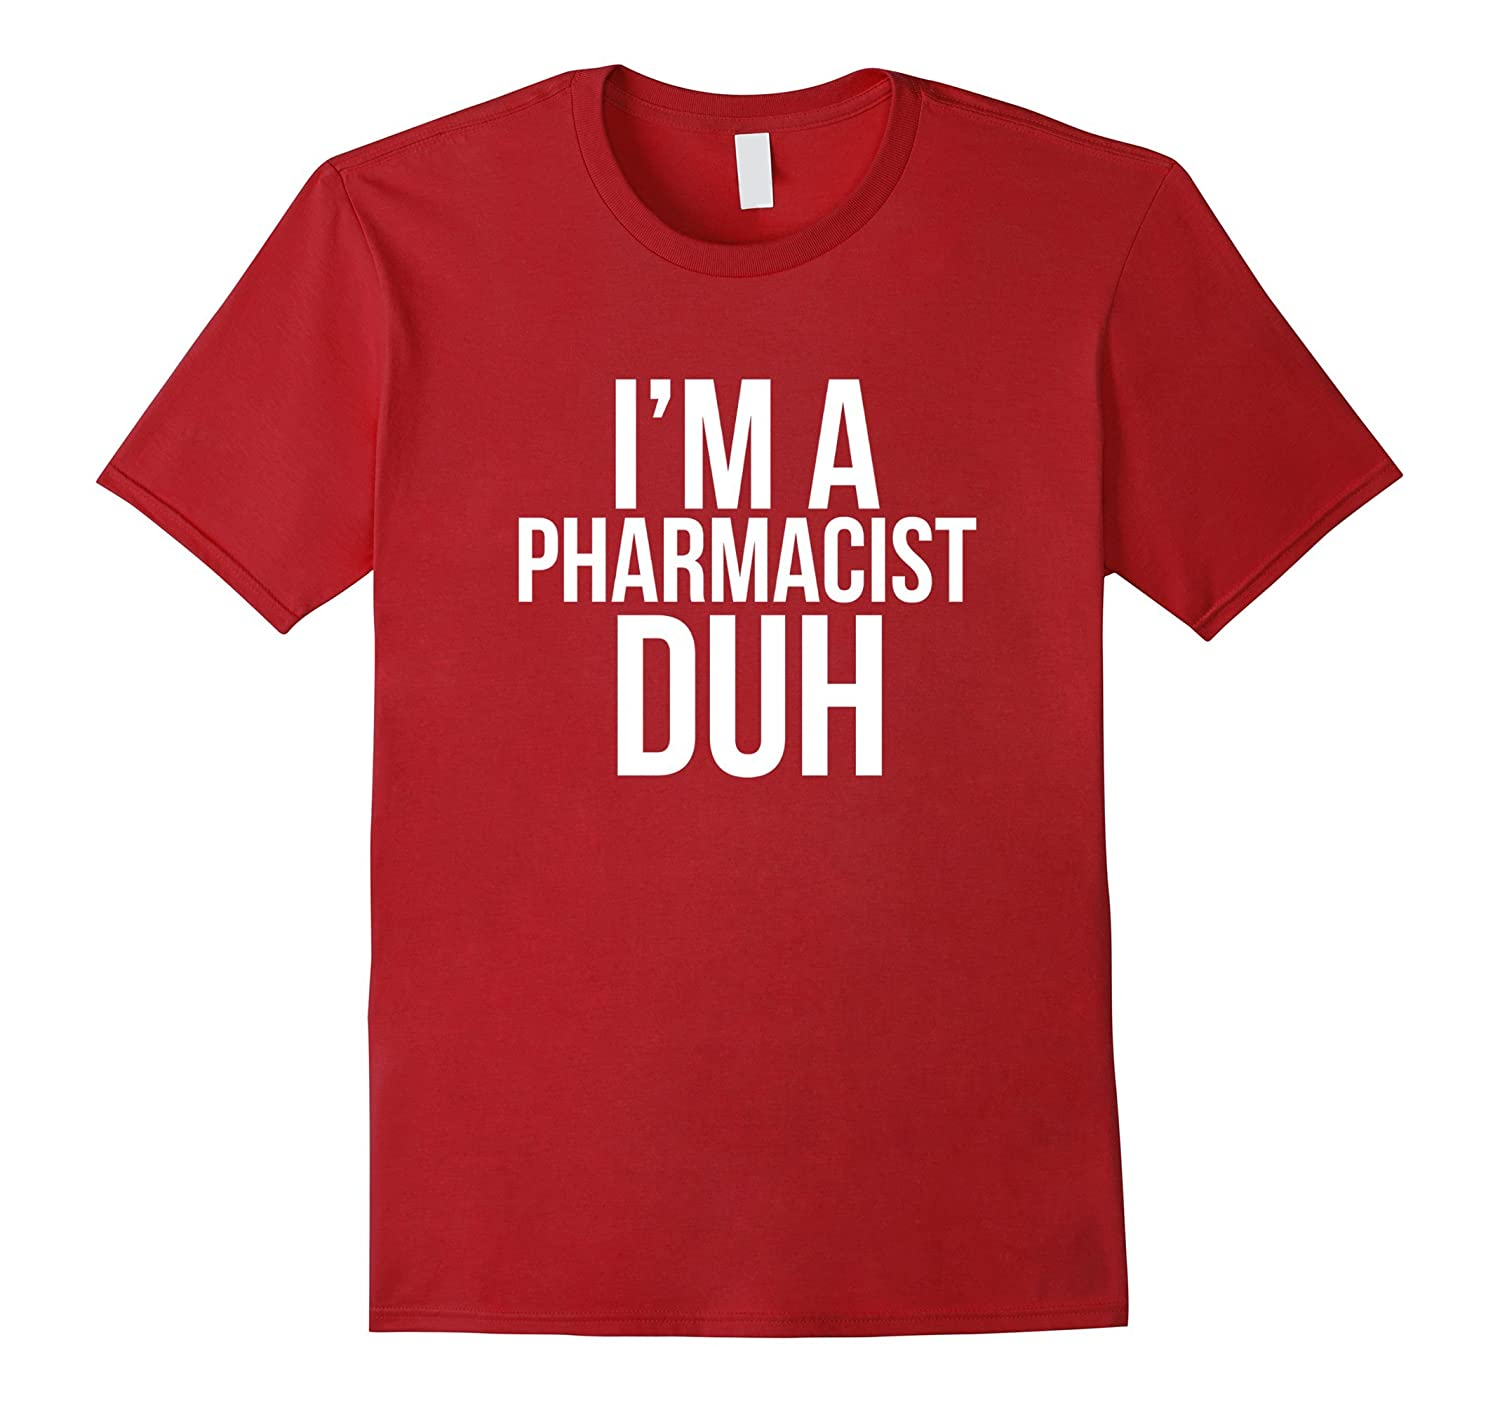 Iu0027m A Pharmacist Duh TShirt Funny Pharmacy Halloween Costume-FL  sc 1 st  Sunflowershirt & Iu0027m A Pharmacist Duh TShirt Funny Pharmacy Halloween Costume-FL ...